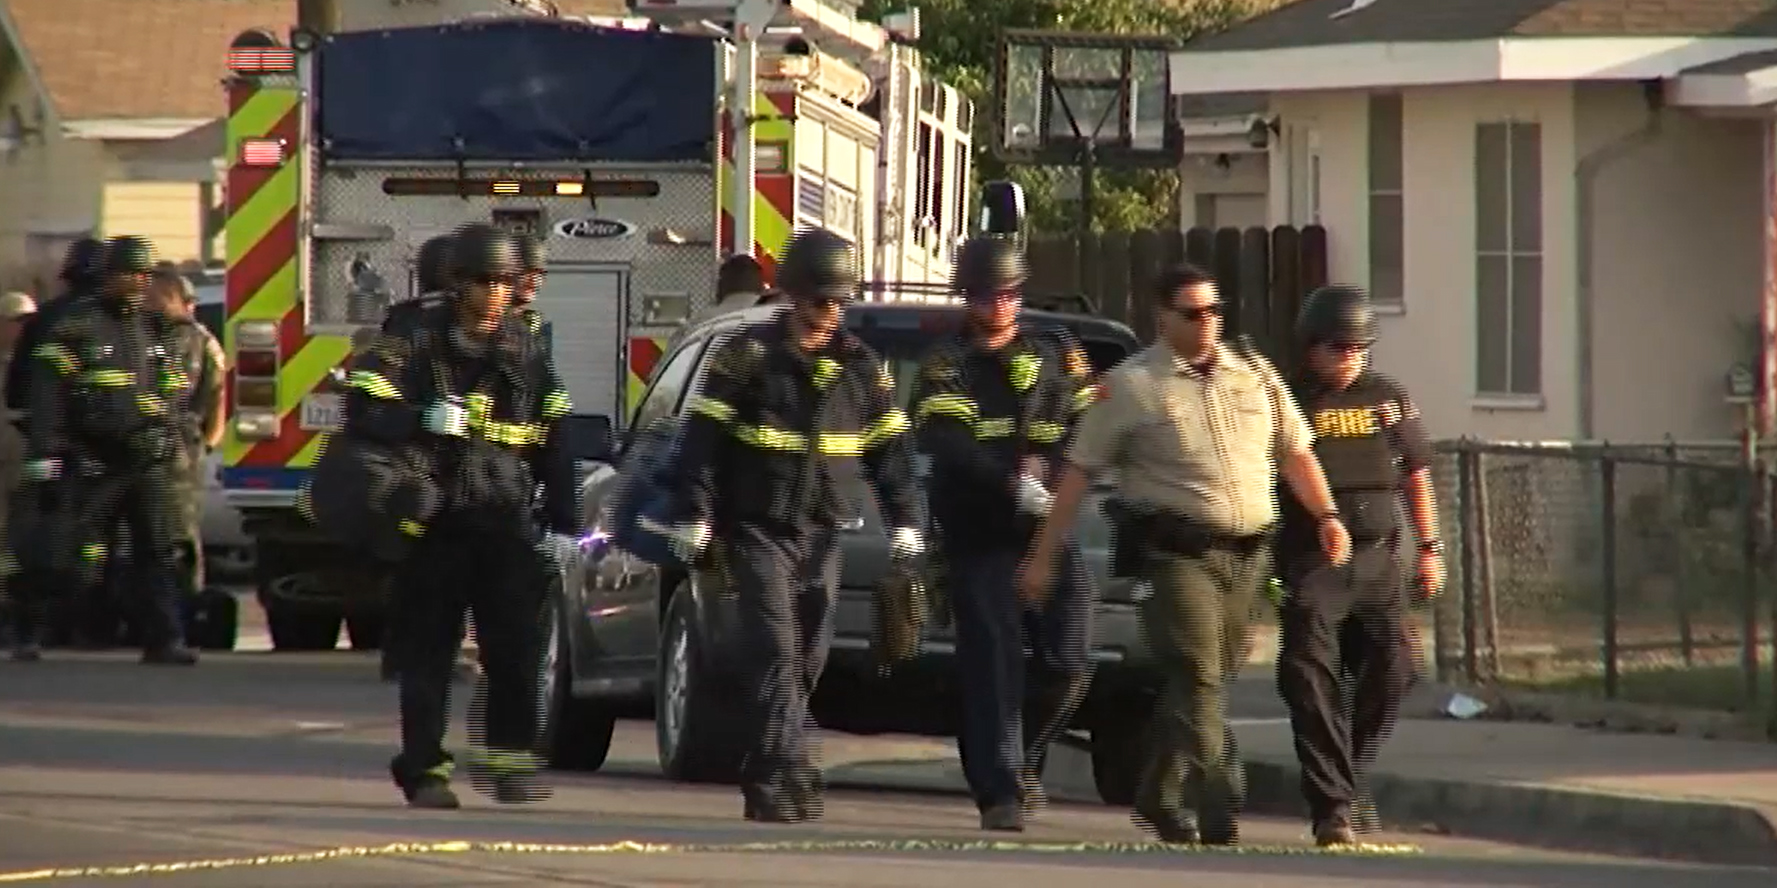 5 dead, including a sheriff's deputy, in the wake of California standoff